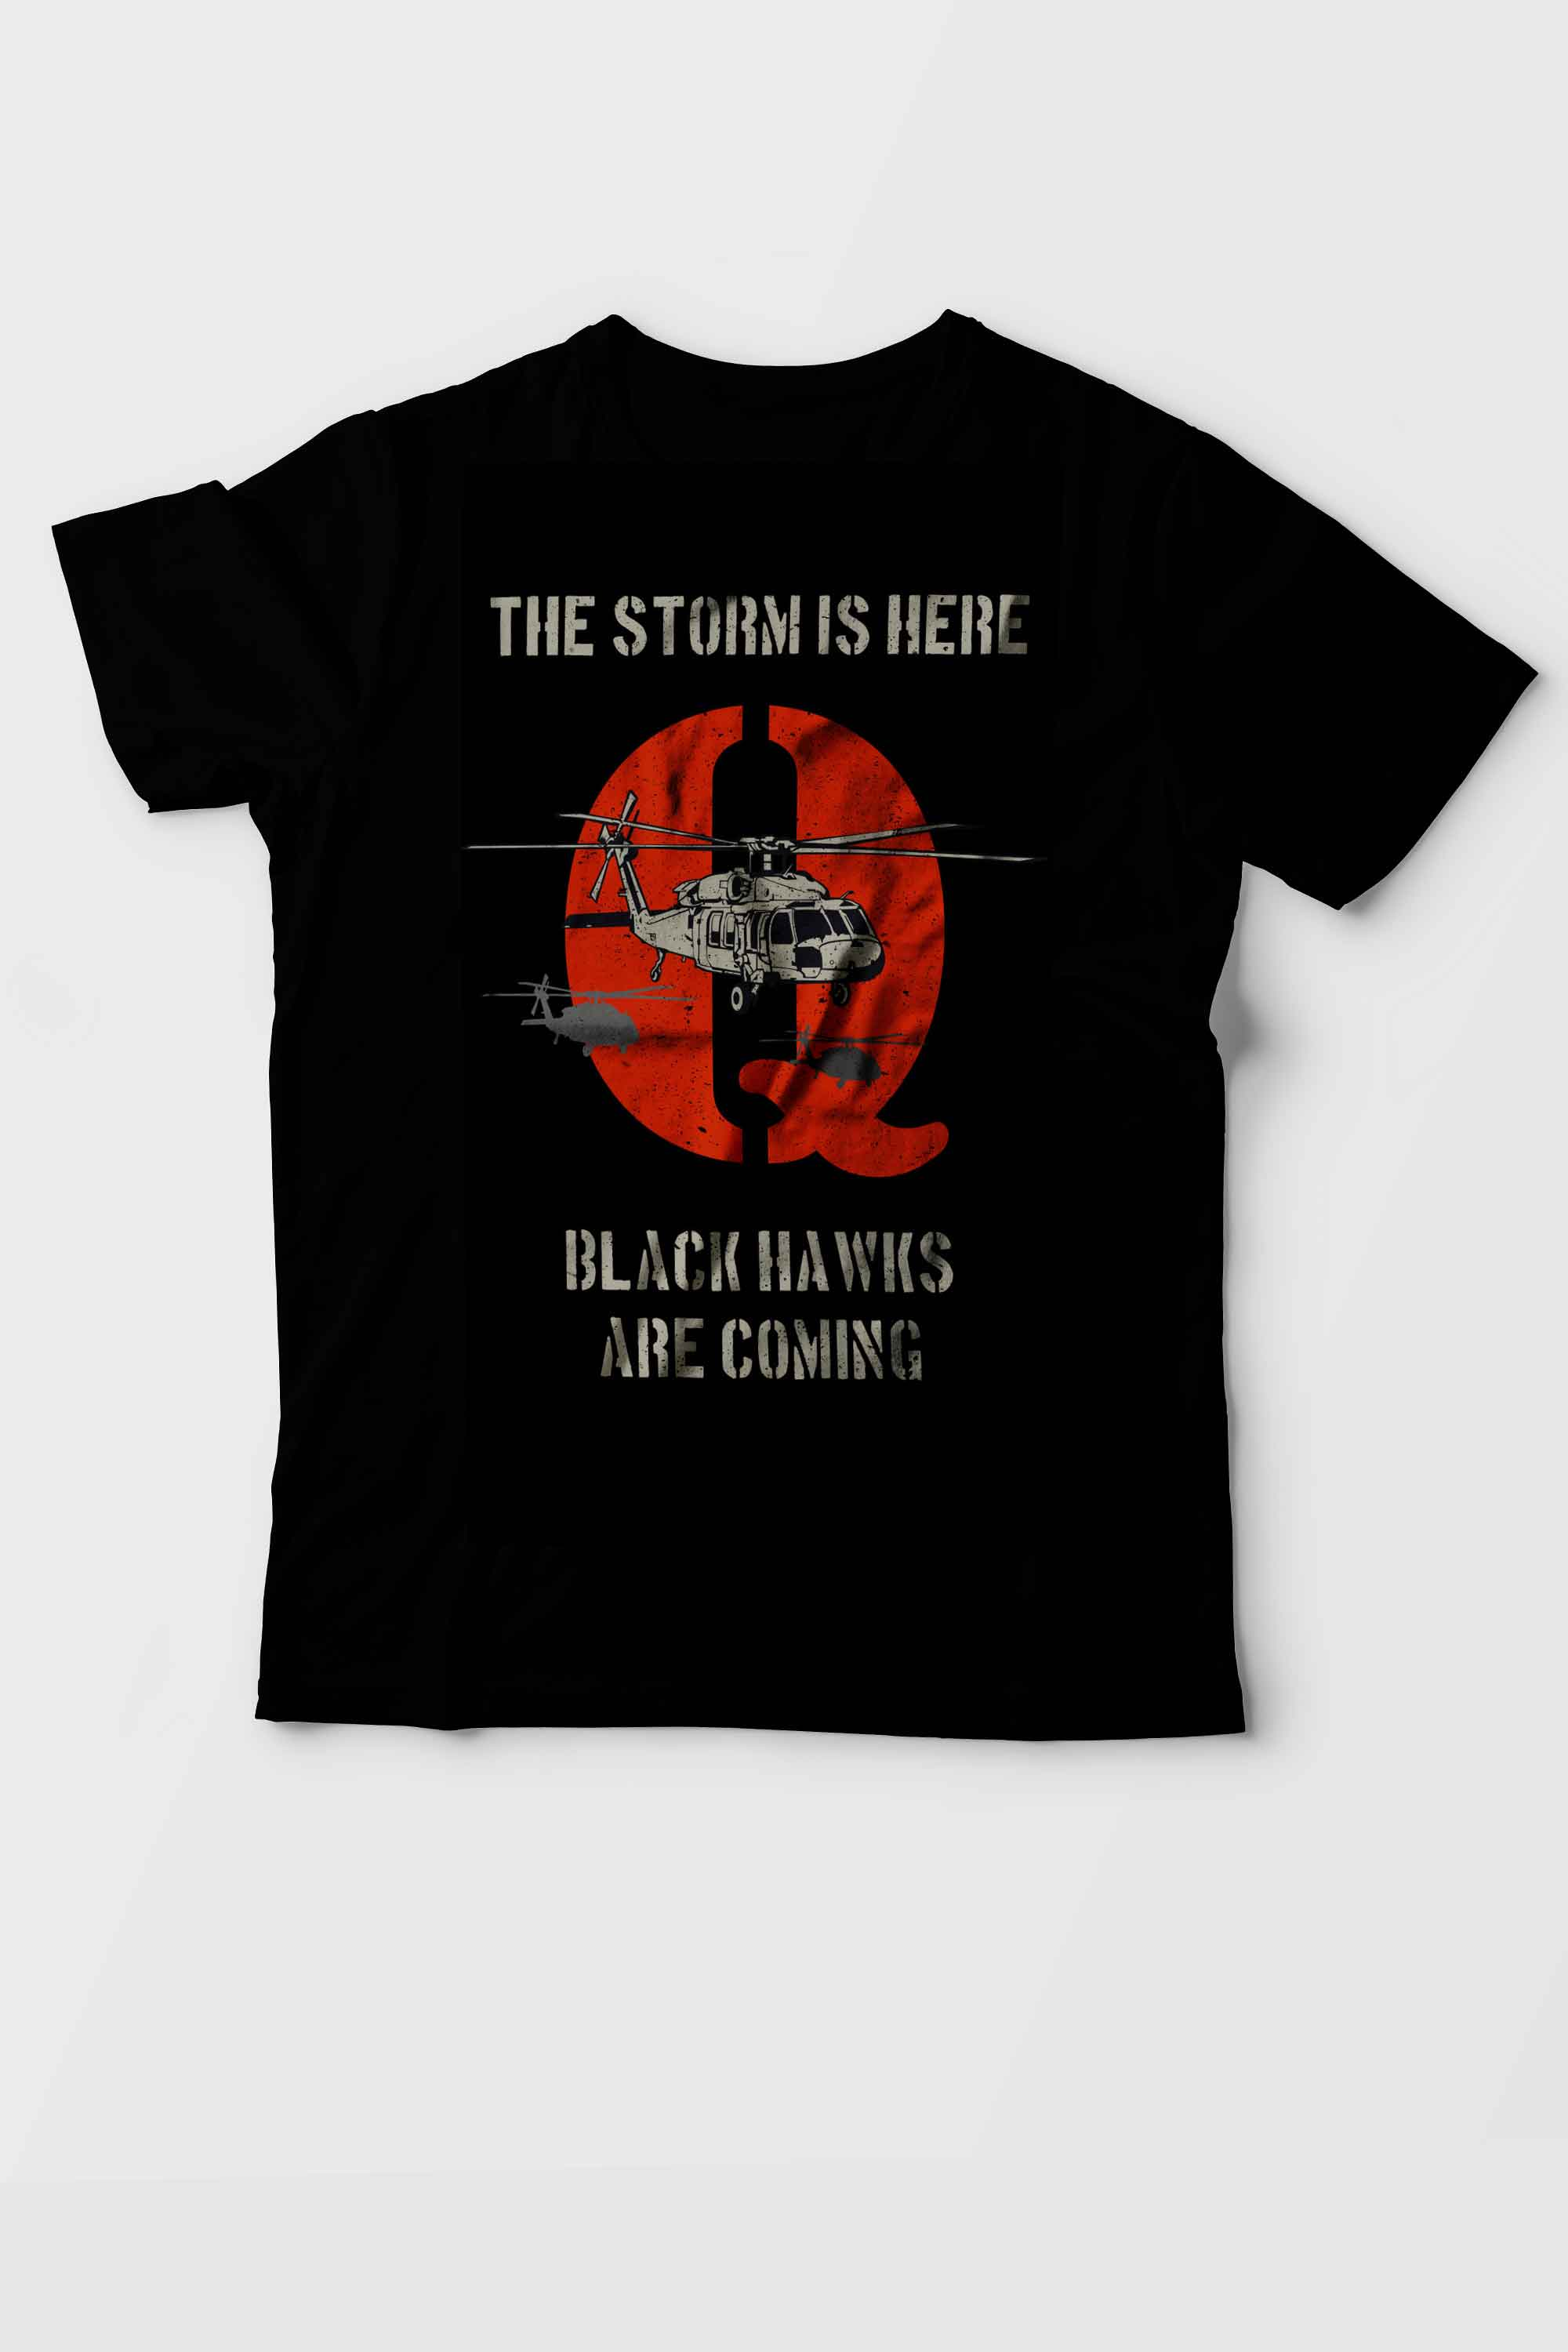 Qanon, Q, The Storm is here, Black Hawks are coming T-shirt